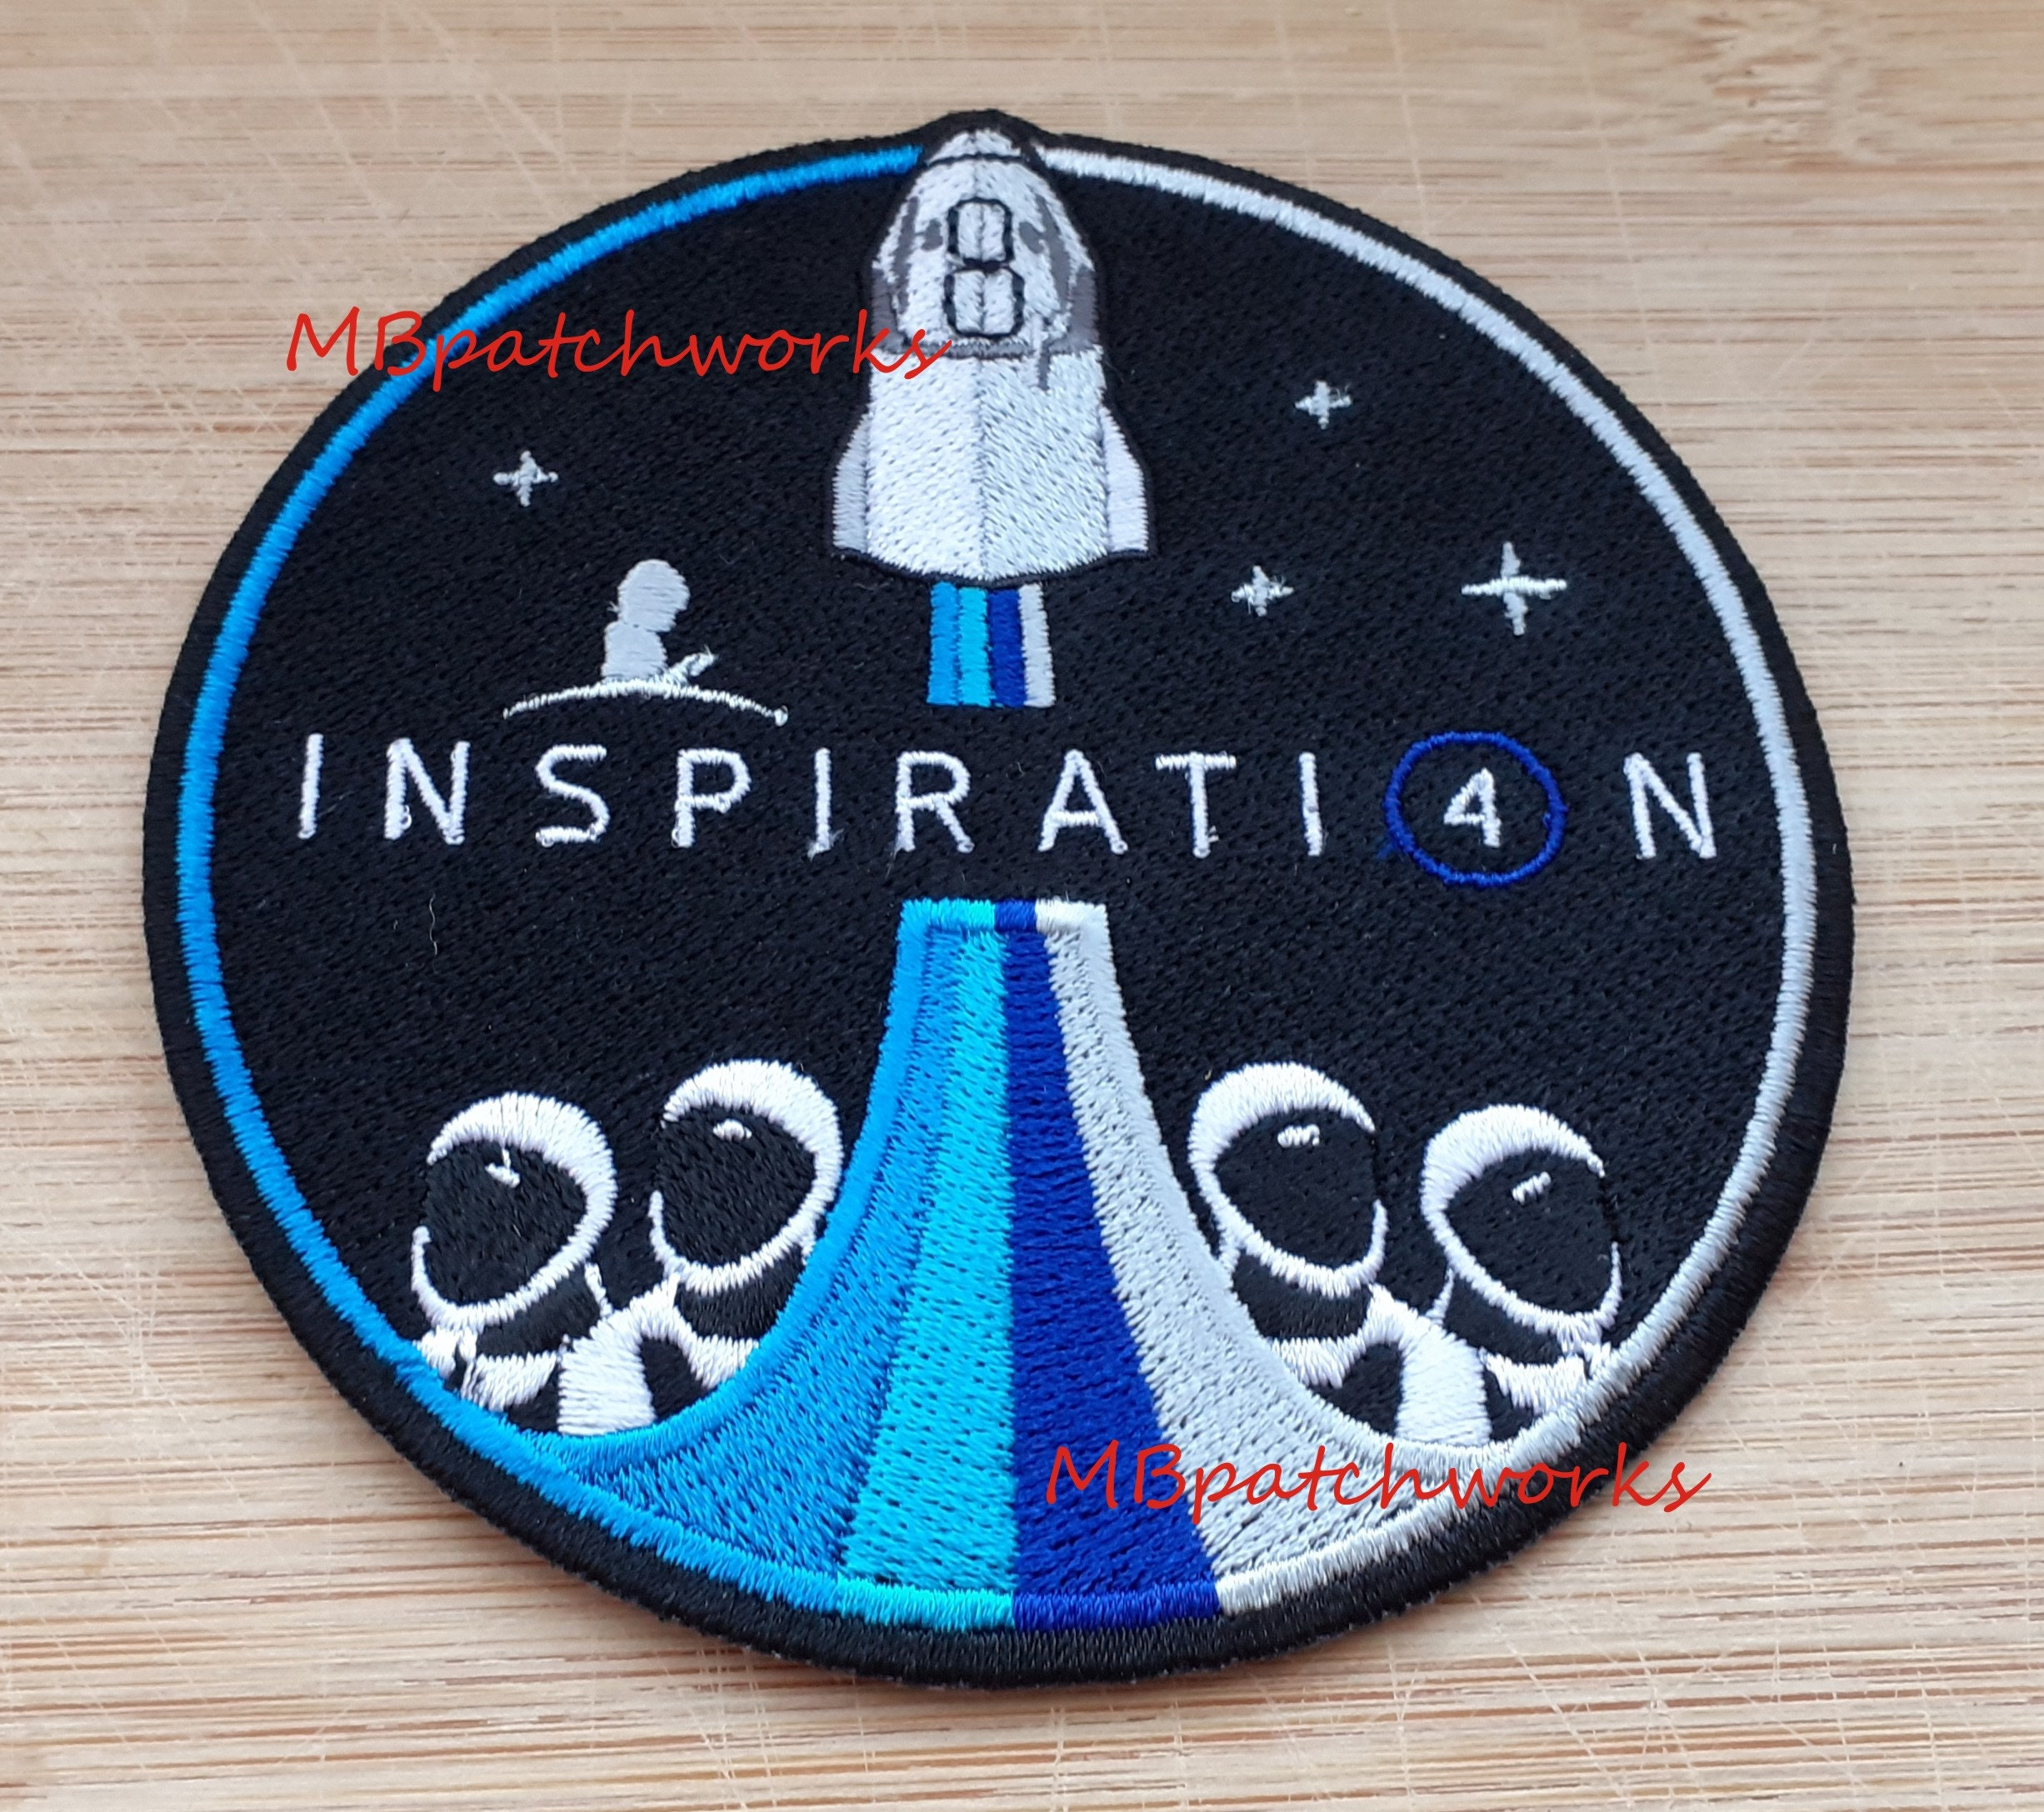 NASA SpaceX Inspiration 20 Logo Patch Kennedy Space Centers Apollo and Space  Shuttle Missions Jersey Emblem sew on embroidery patches